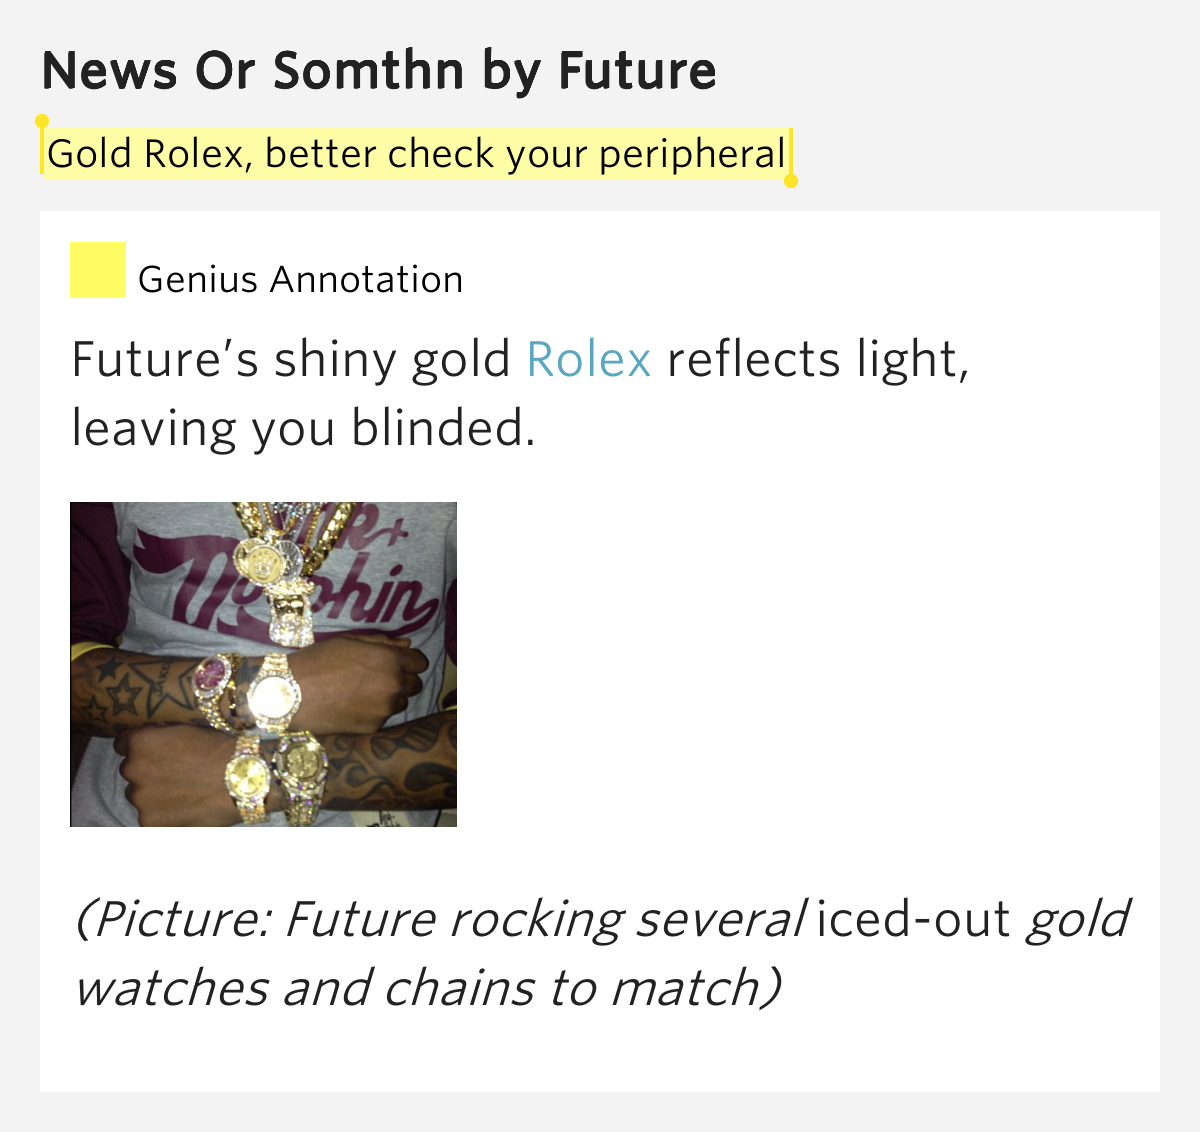 Gold Rolex Better Check Your Peripheral News Or Somthn